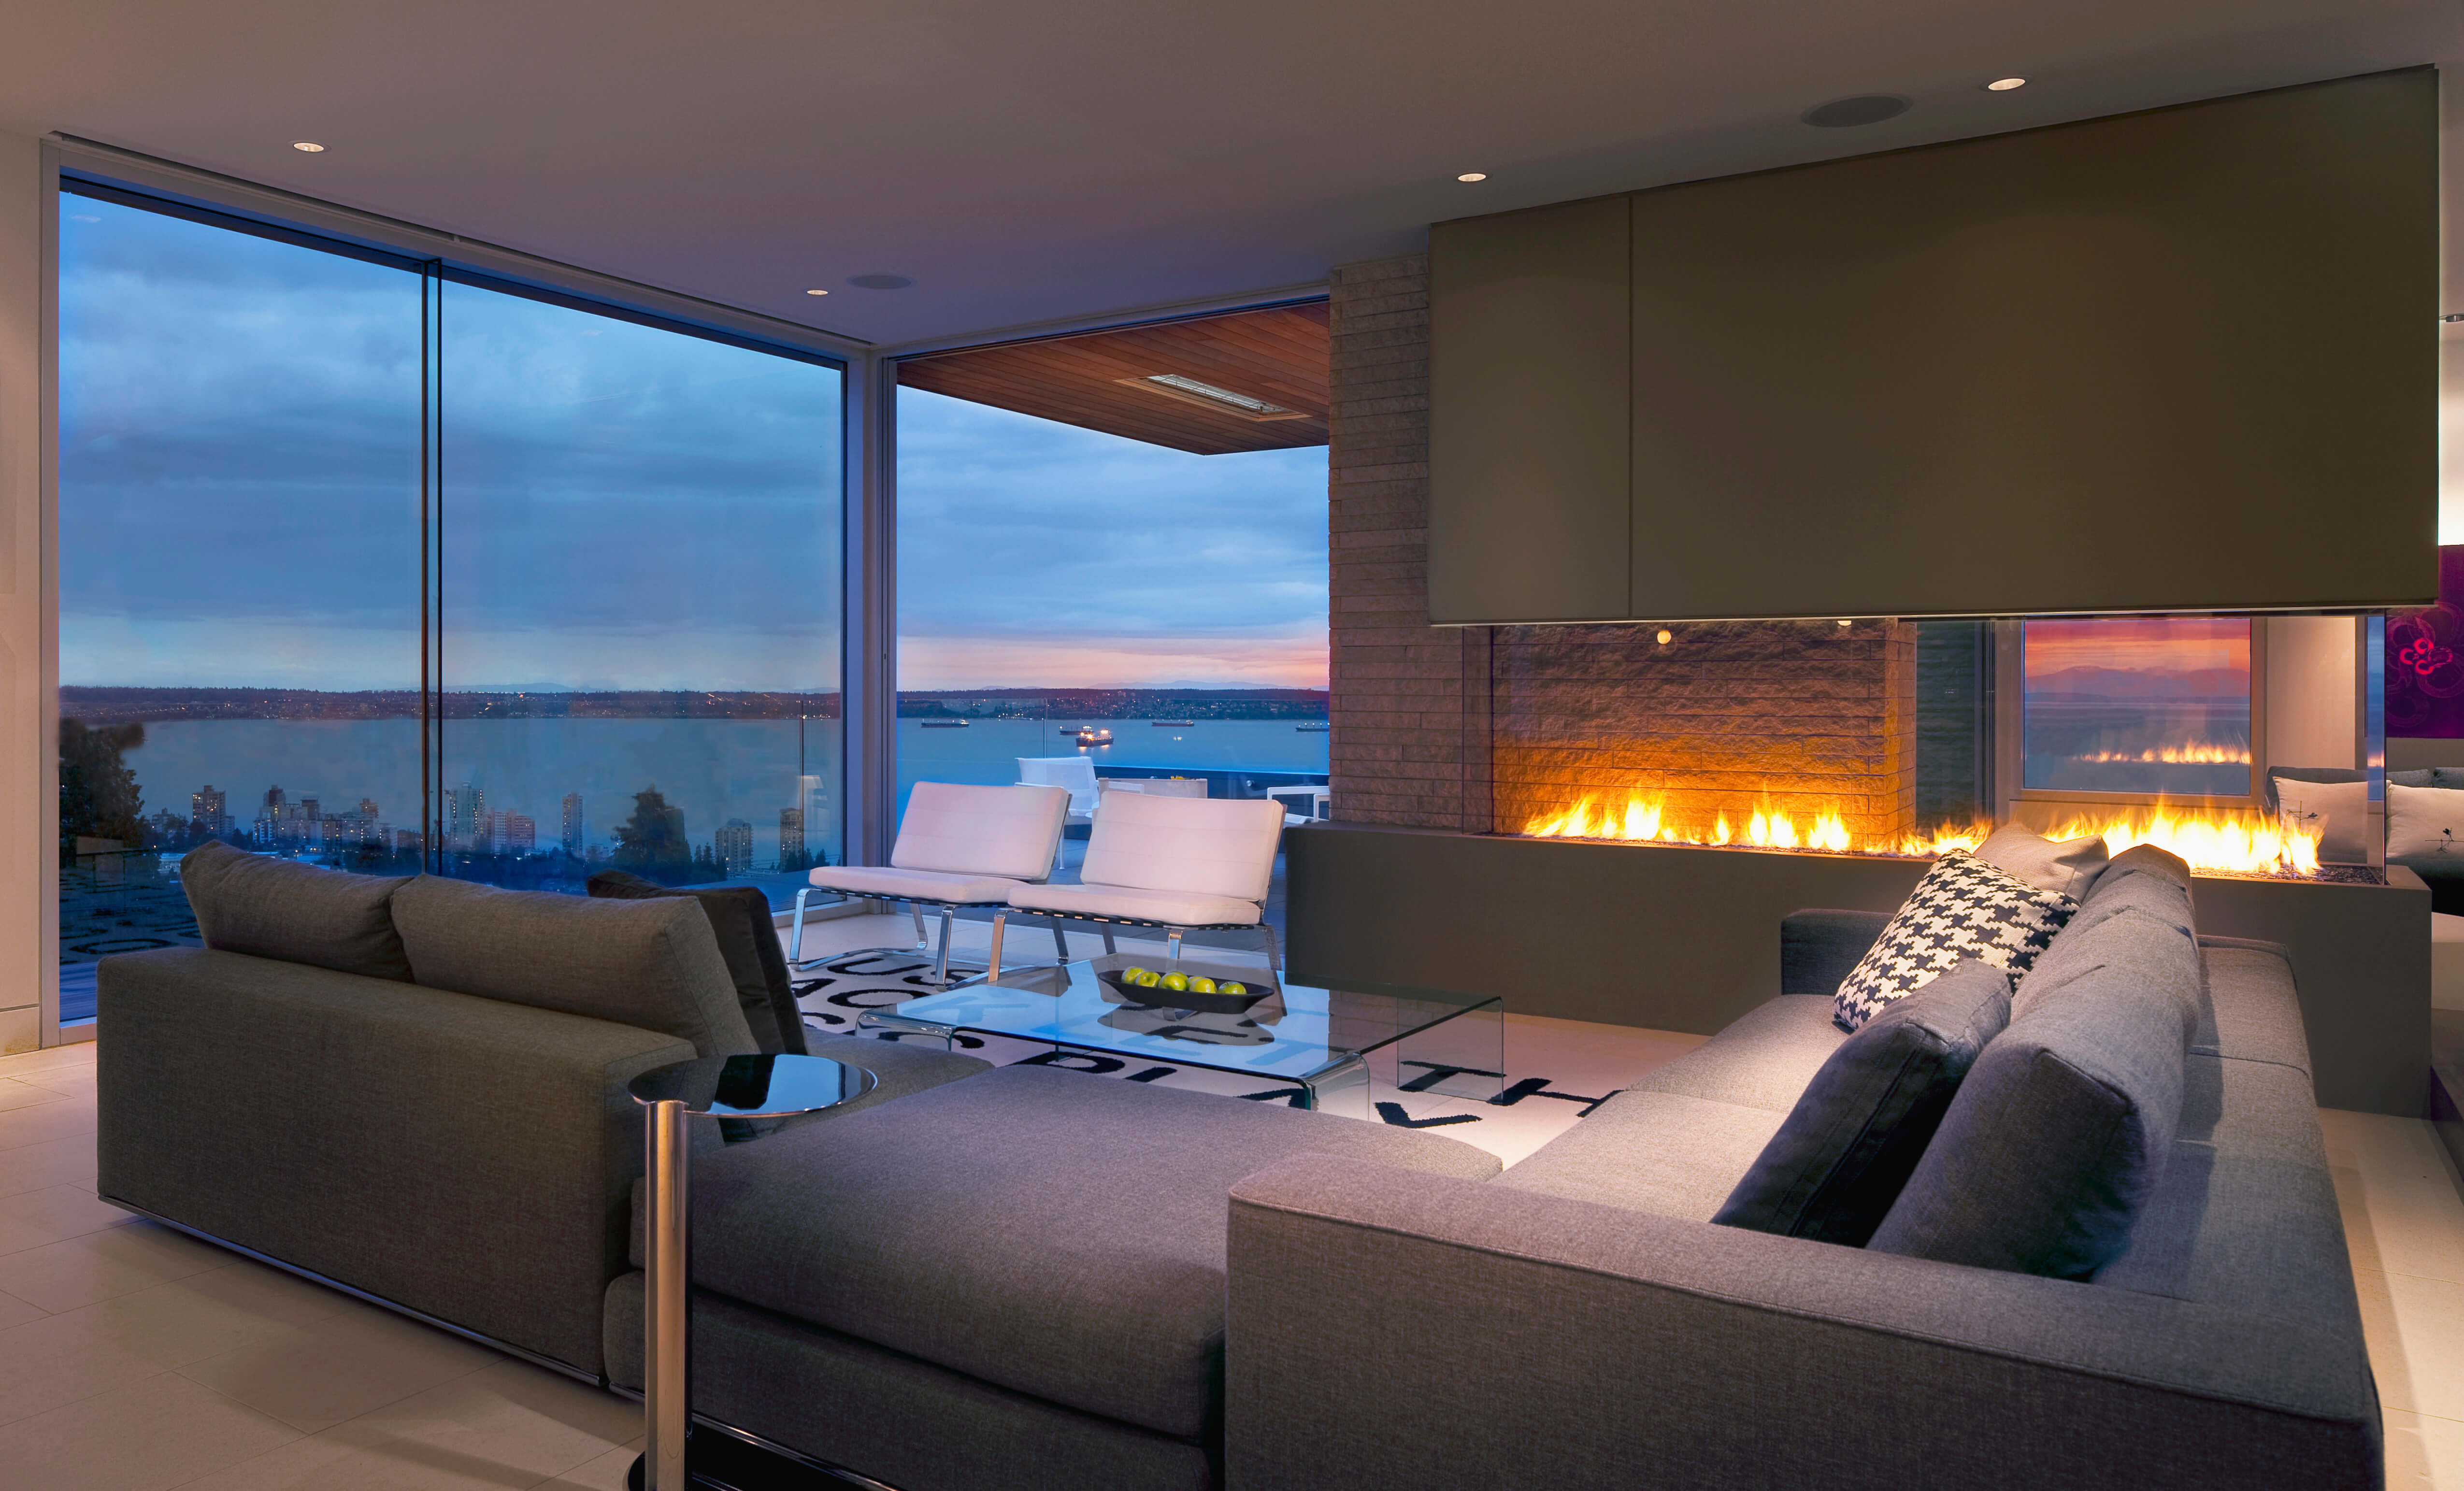 The living room centers on this unique gas fireplace, framed in glass, with contemporary furniture including an all glass coffee table. Full height glazing allows for breathtaking views.